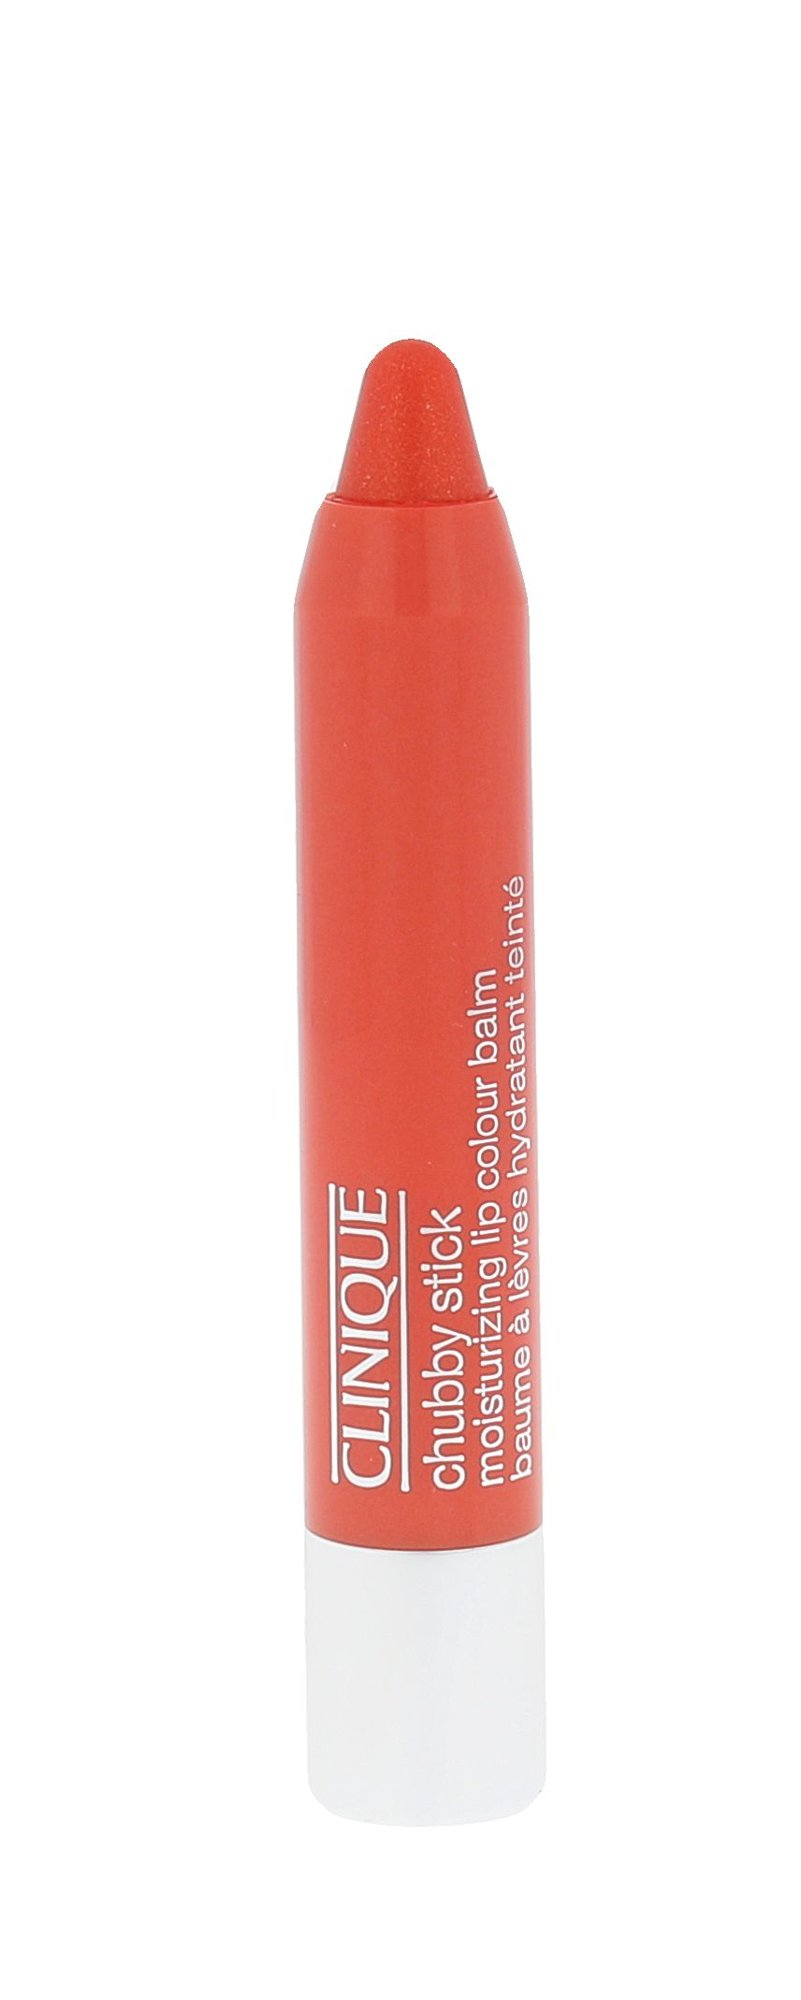 Clinique Chubby Stick Cosmetic 3ml 12 Oversized Orange